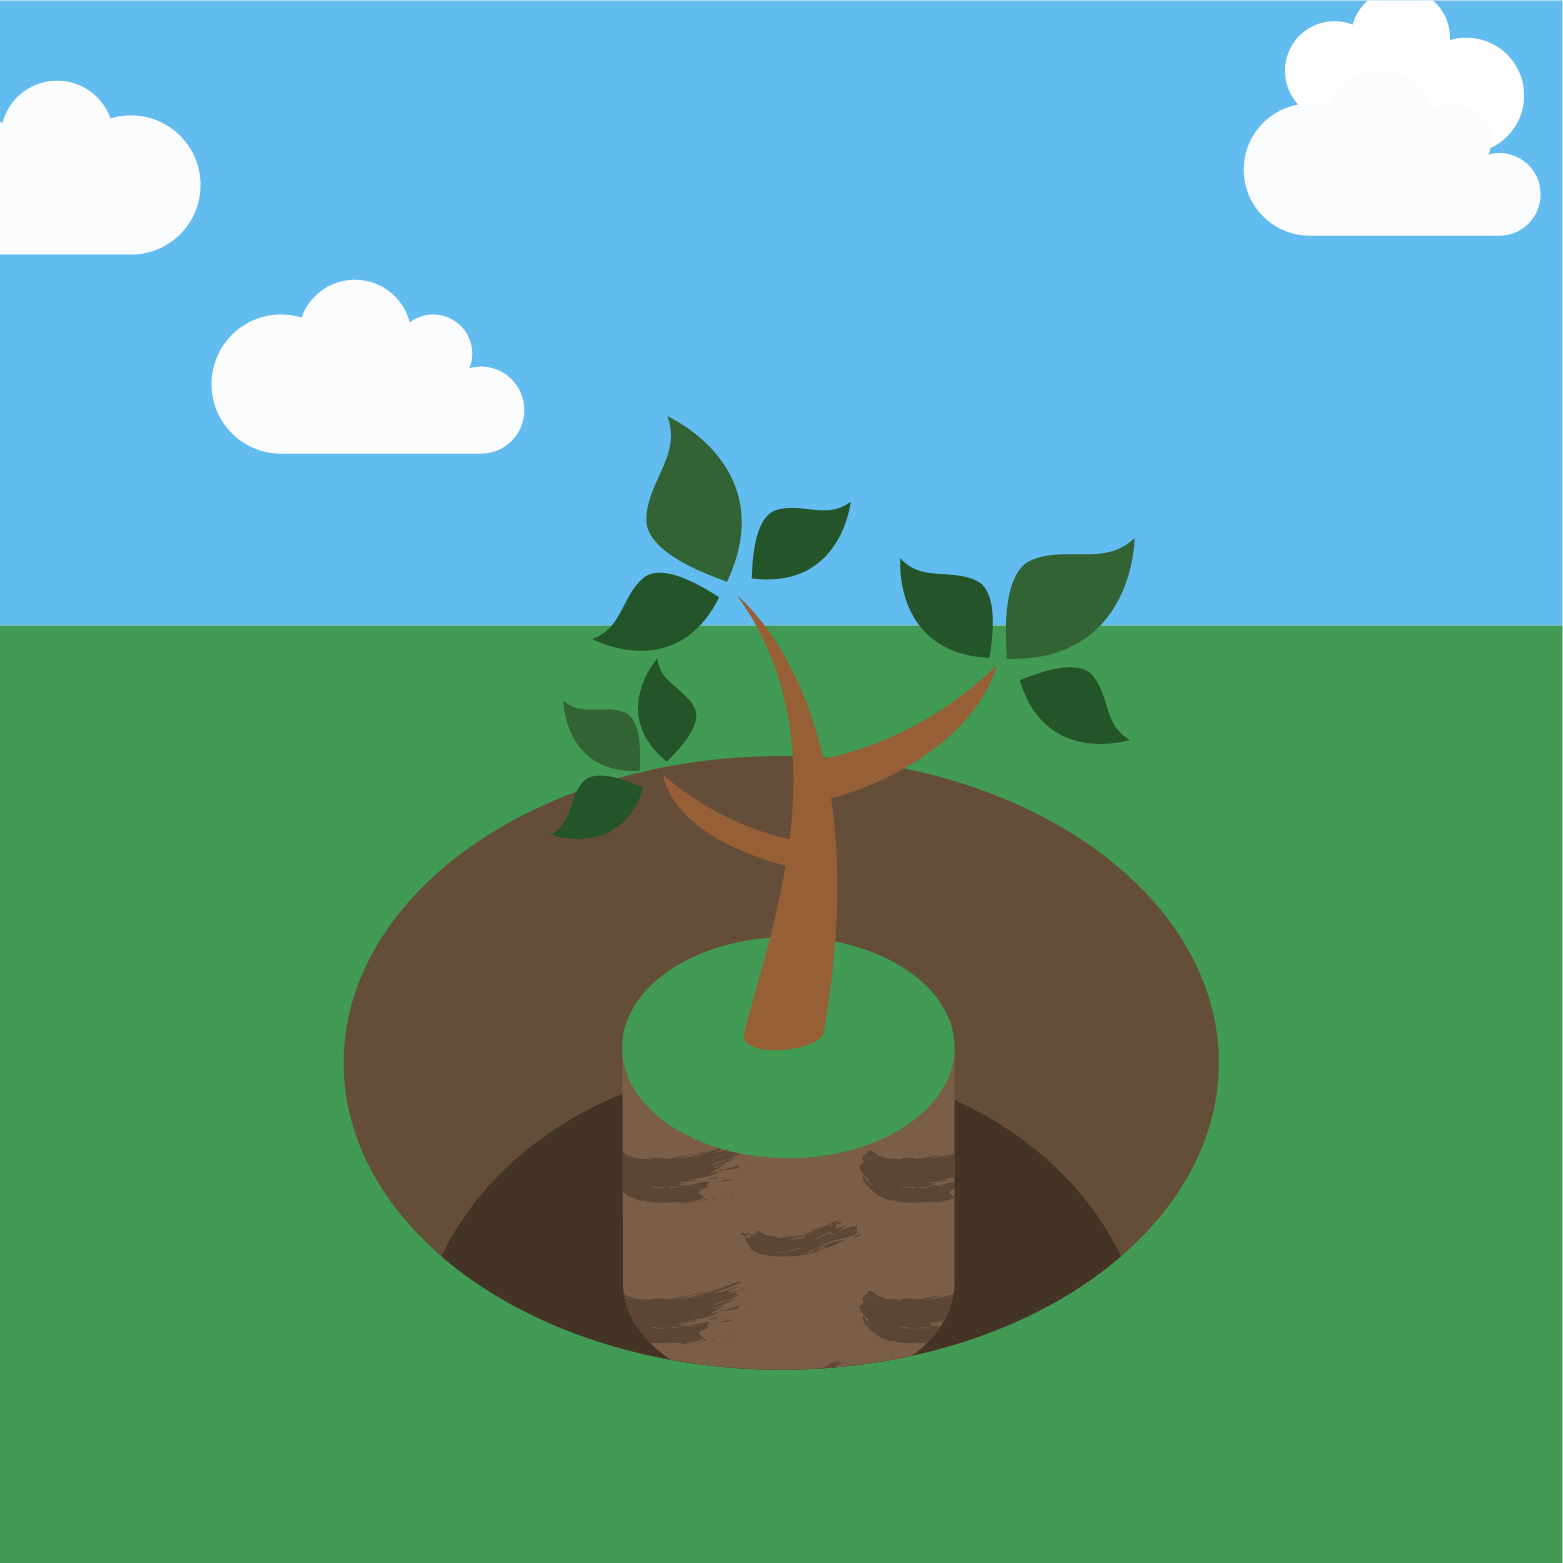 icon for planting a tree step 2